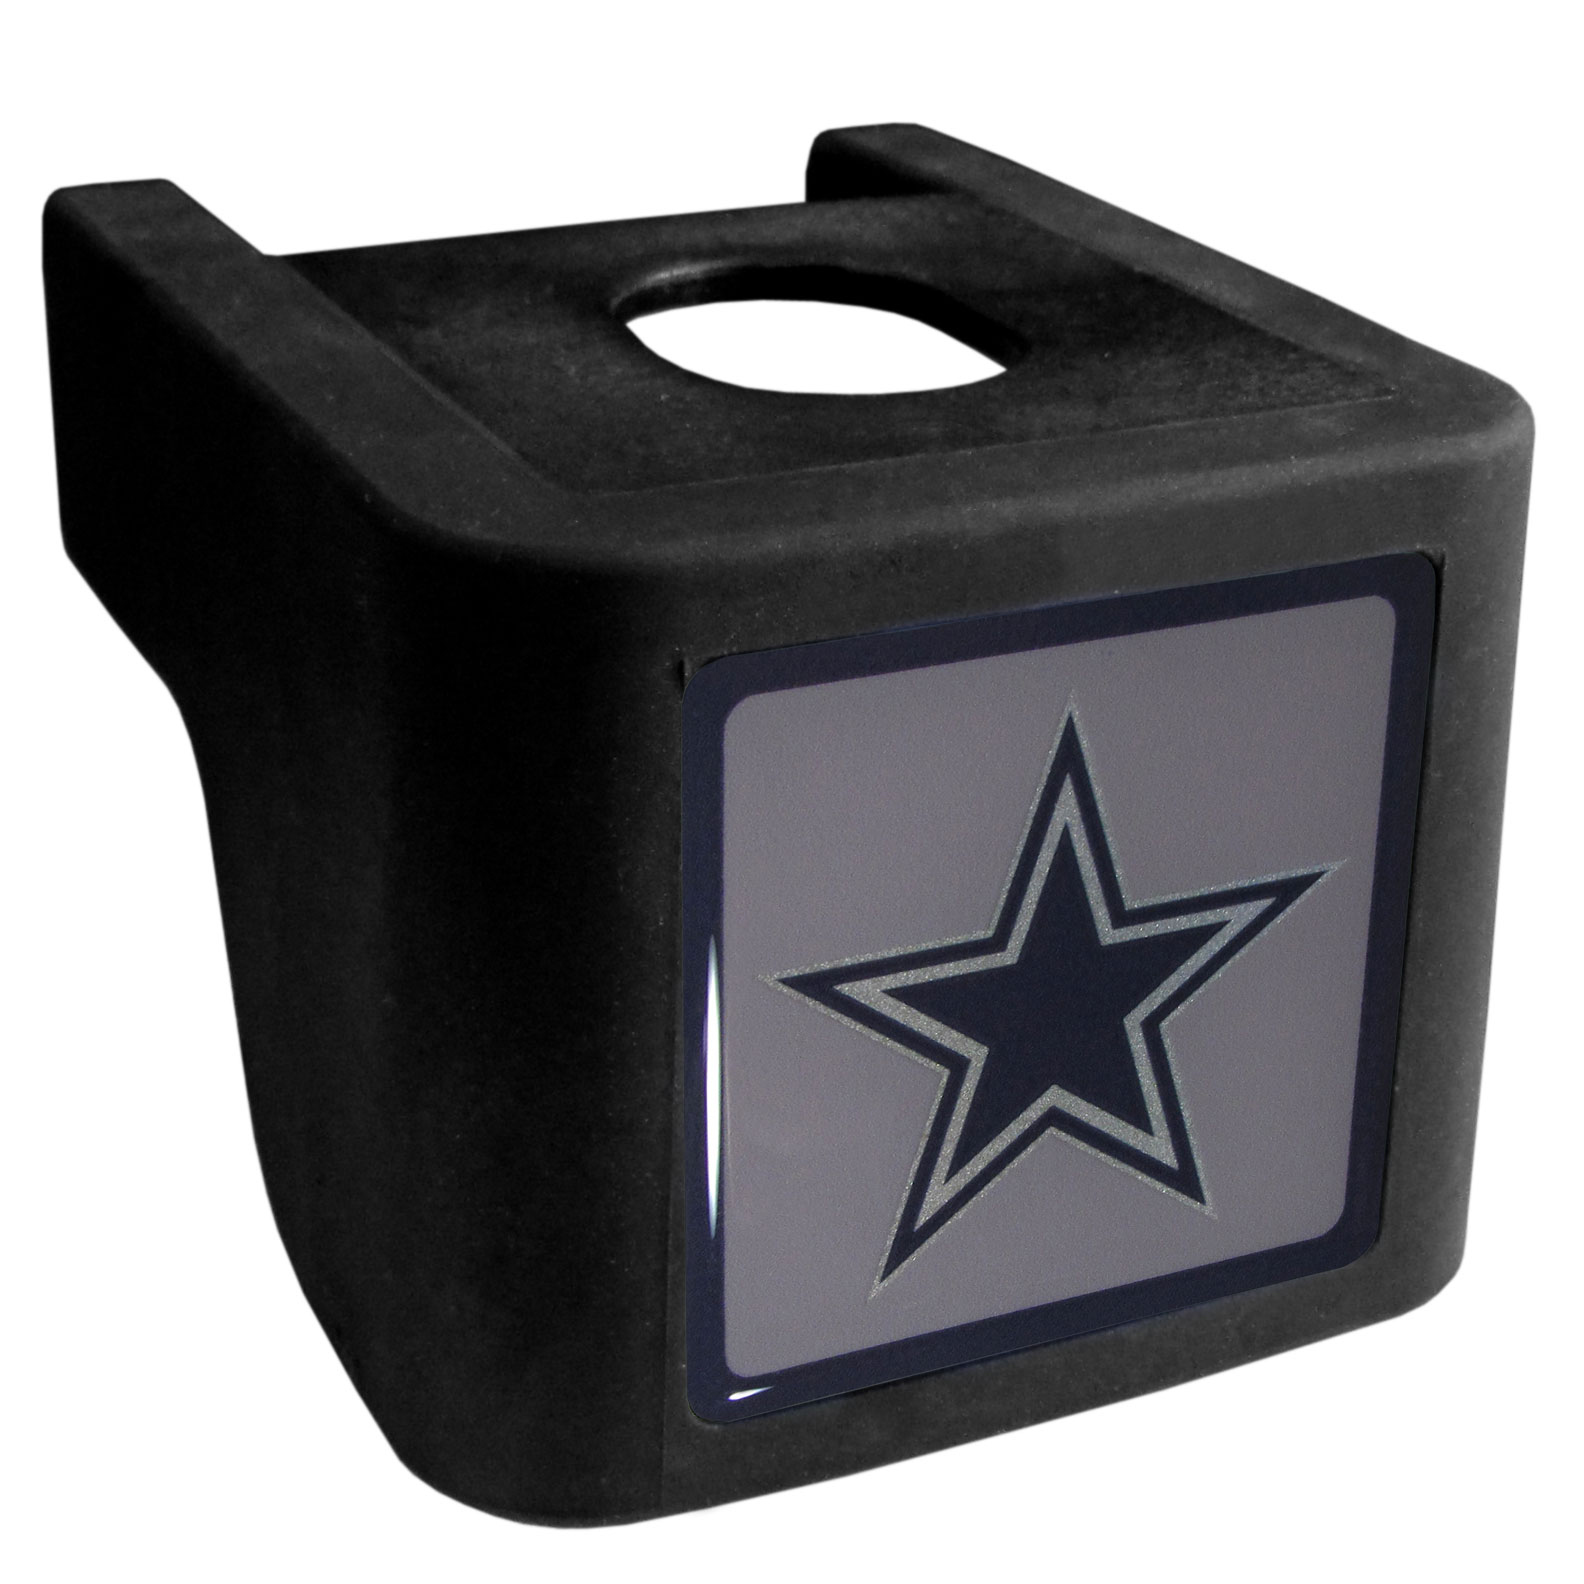 Dallas Cowboys Shin Shield Hitch Cover - This unique hitch cover features a large Dallas Cowboys logo. If you have ever hooked up a trailer or boat your have probably smashed your shins on the ball hitch a few times. This revolutionary shin shield hitch cover provides your much abused shins with the protection they deserve! The tough rubber hitch is rated to work with Class V hitch receivers hauling up to 17,000 gross trailer weight and 1,700 tongue weight allowing you to leave it on while hauling.